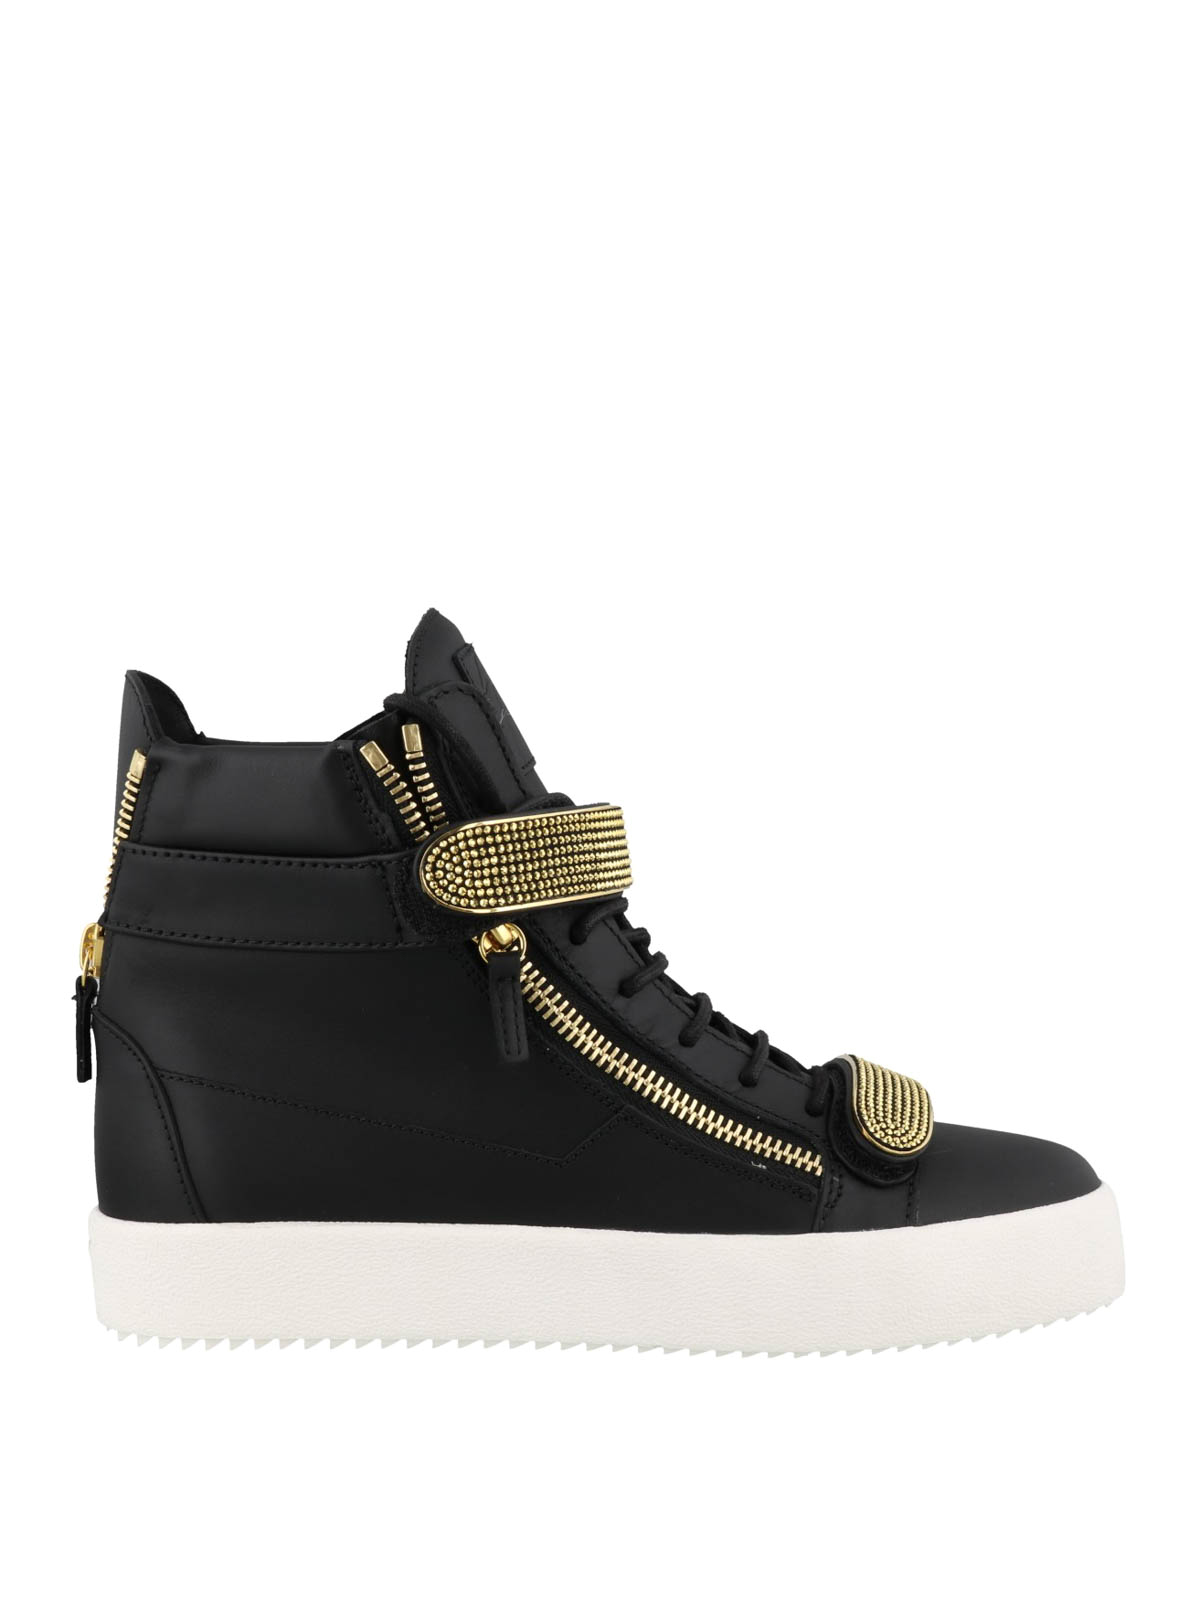 716810728f076 Giuseppe Zanotti - May London black and gold sneakers - trainers ...